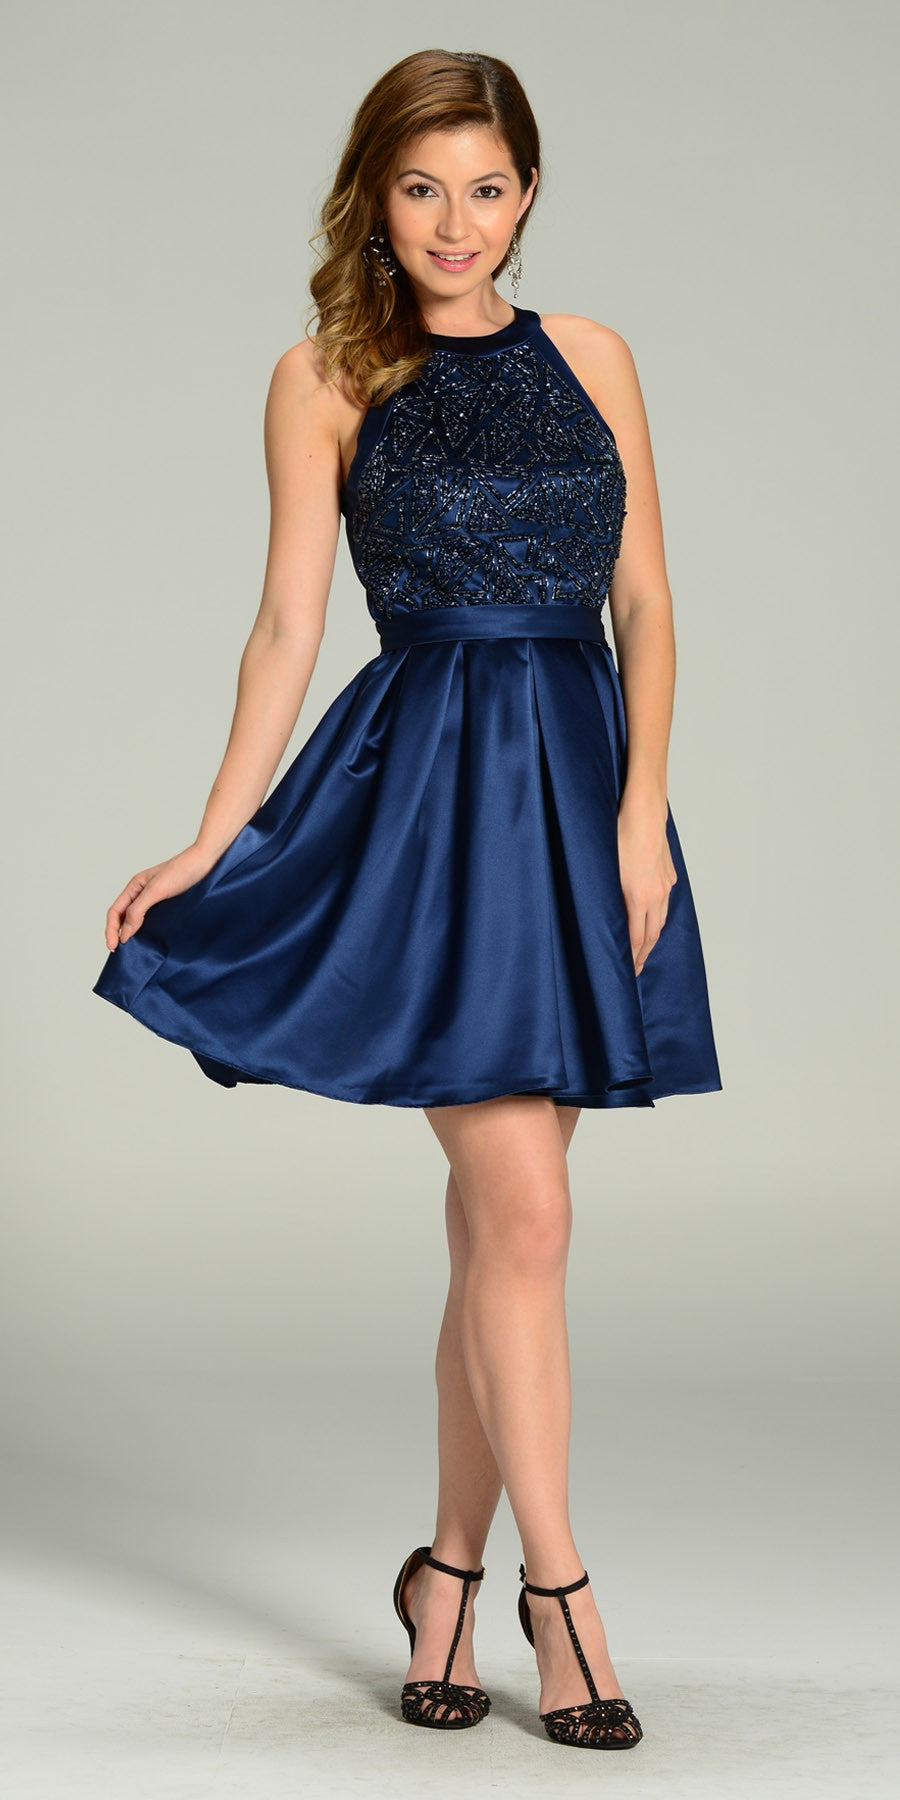 8222429db5 Short Skater Satin A Line Dress Navy Blue Beaded Bodice Round Neck. Tap to  expand